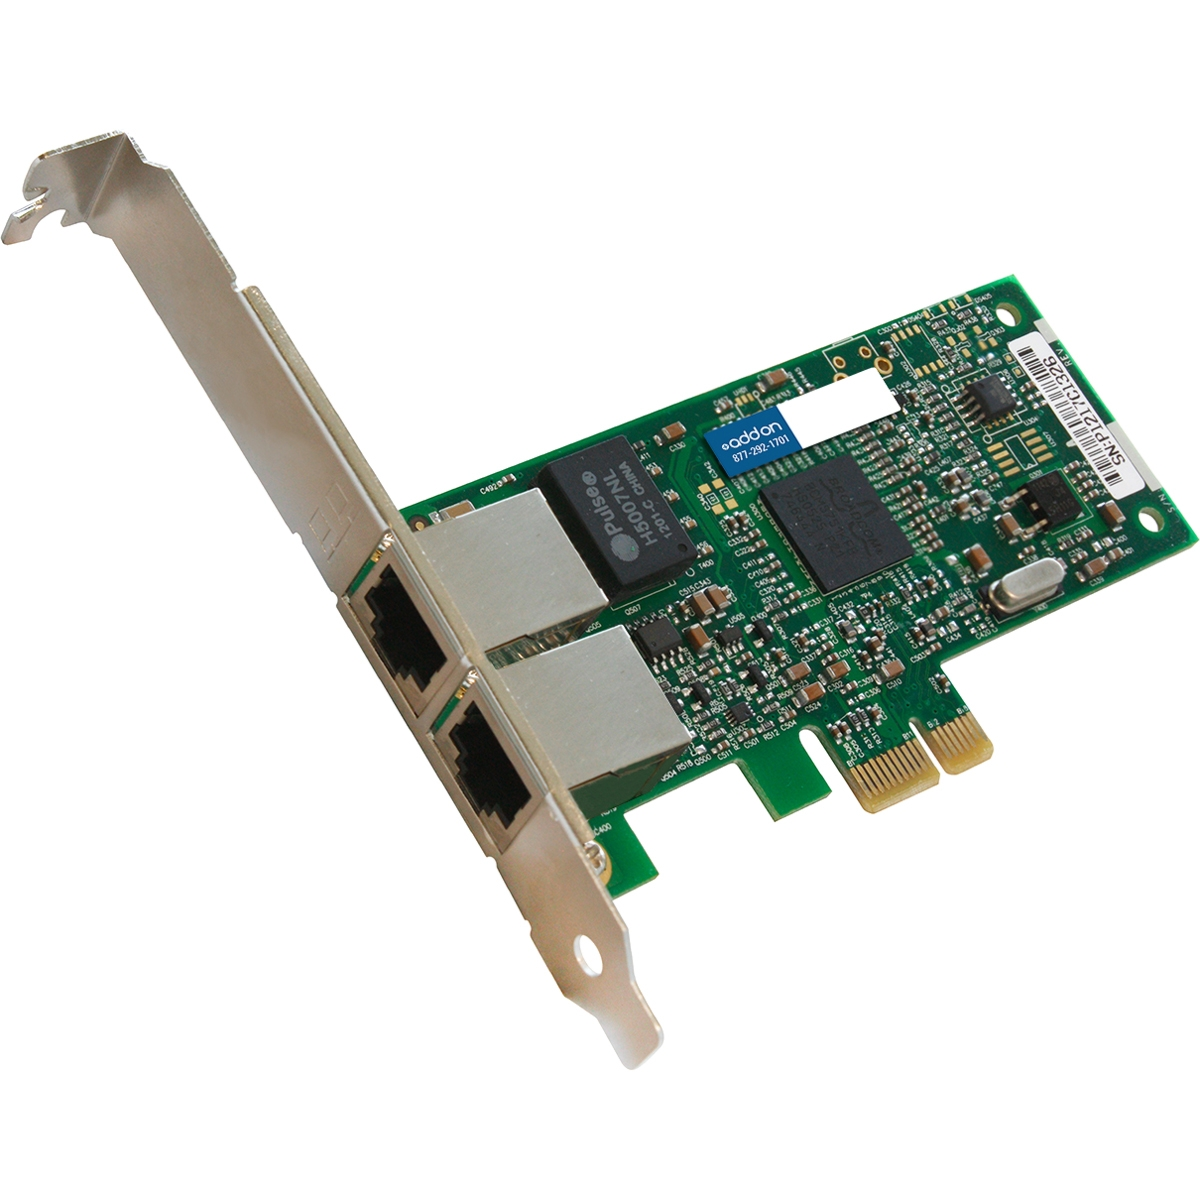 HP 615732-B21 Comparable 10/100/1000Mbs Dual Open RJ-45 Port 100m PCIe x4 Network Interface Card - Cost effectively add additional ports and connectivity